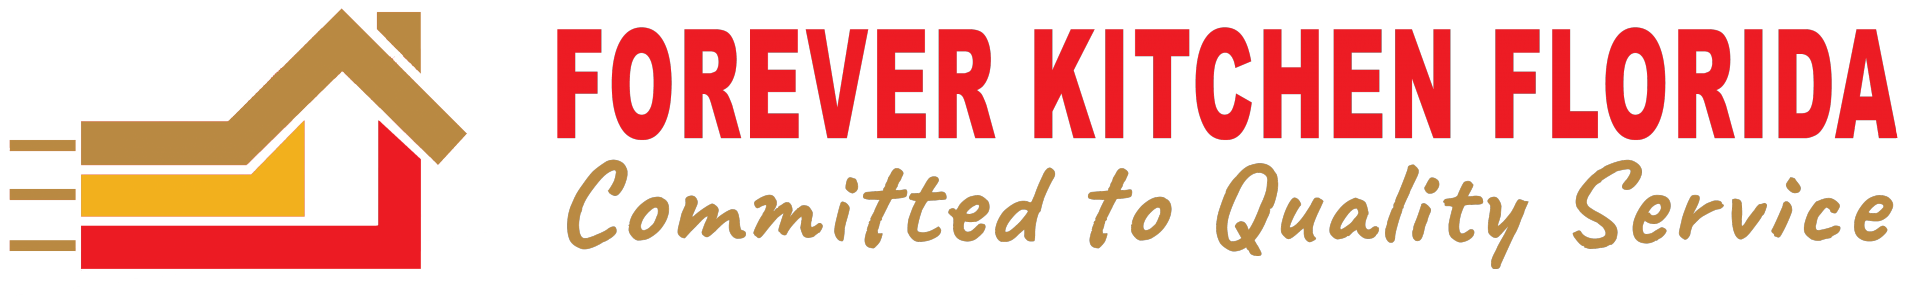 Forever Kitchen Florida